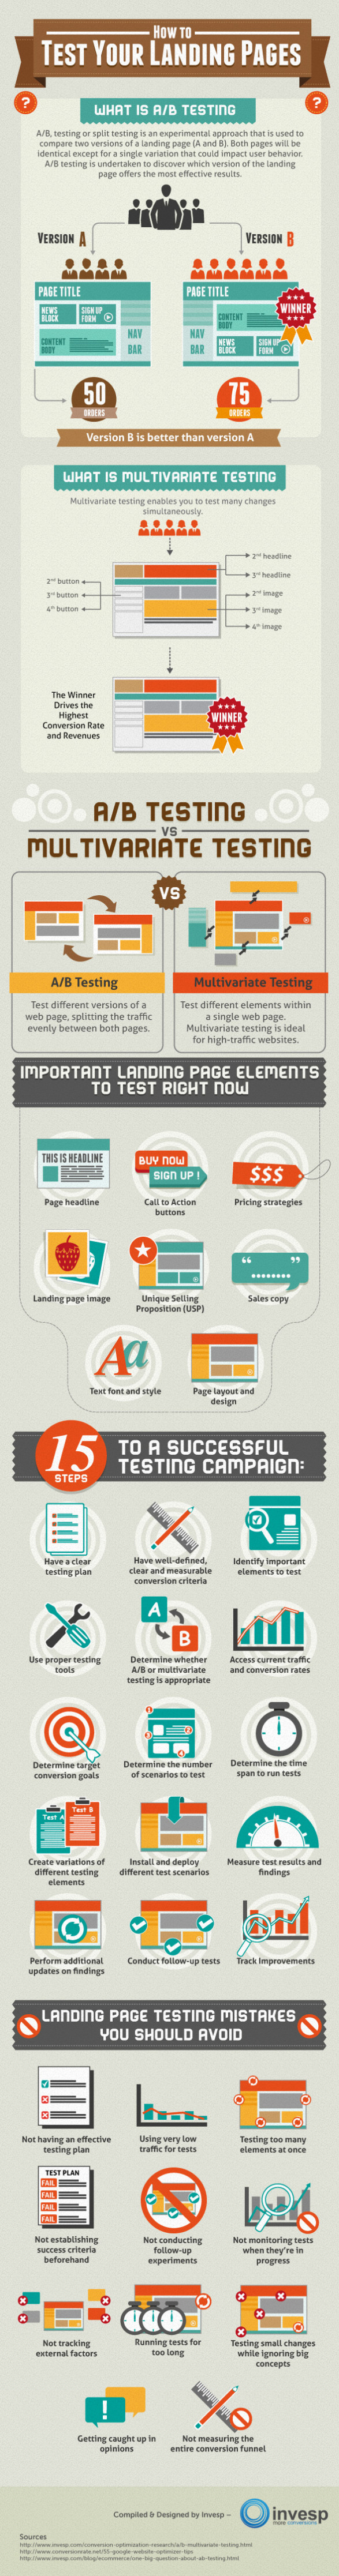 How To Test Your Landing Pages